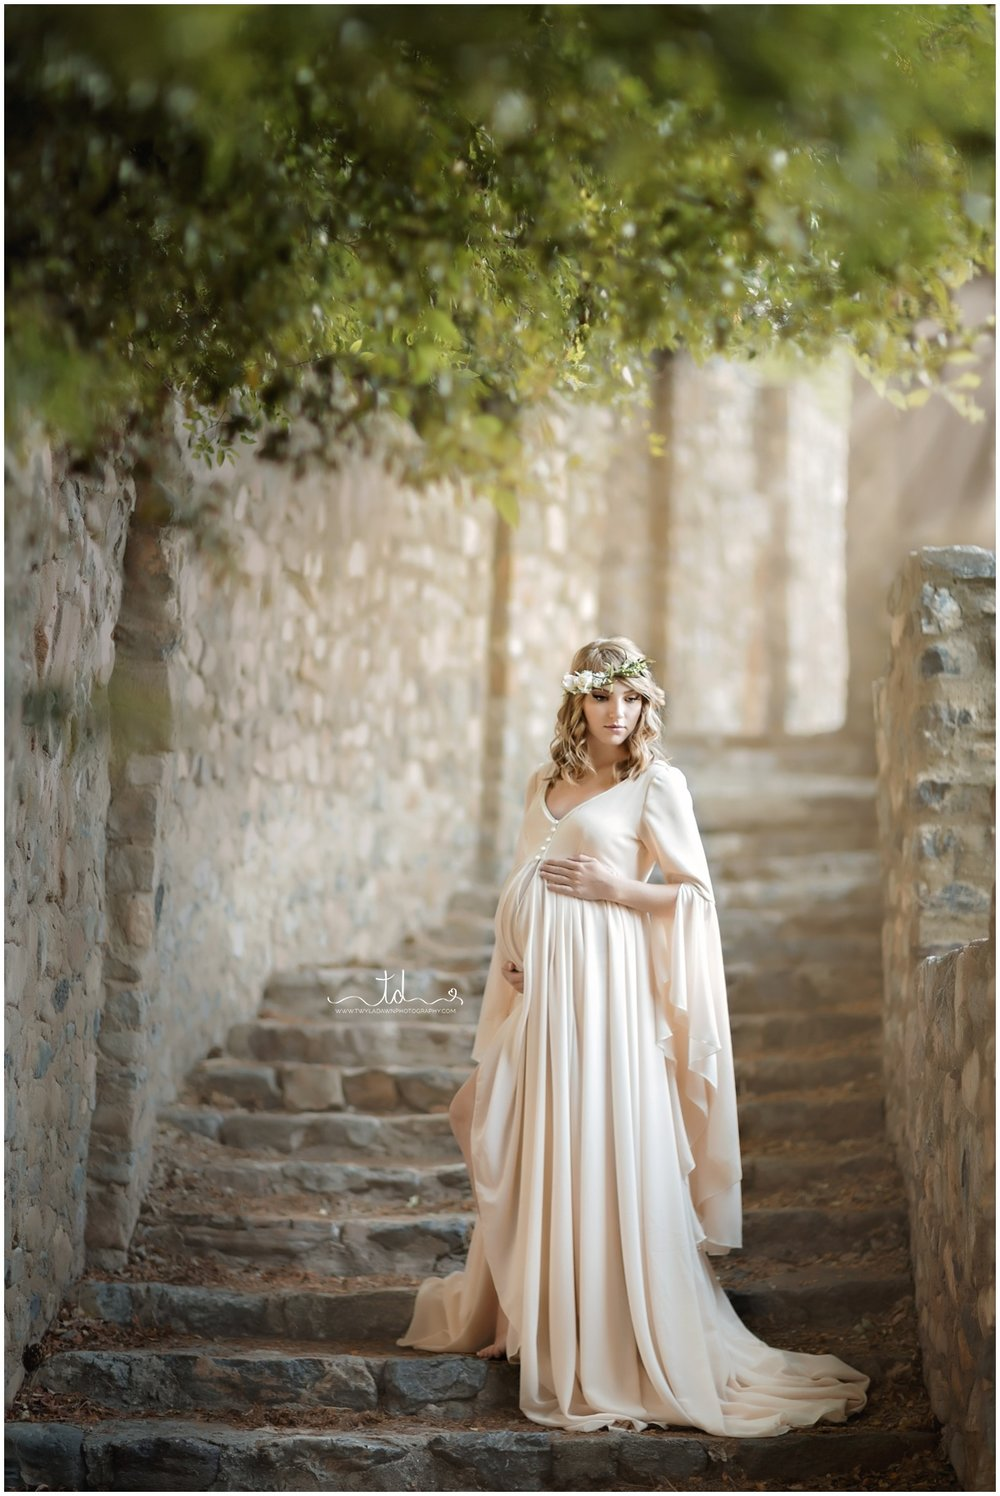 The Lenora Robe in Champagne | Utah Maternity Photographer | Twyla Dawn Photography